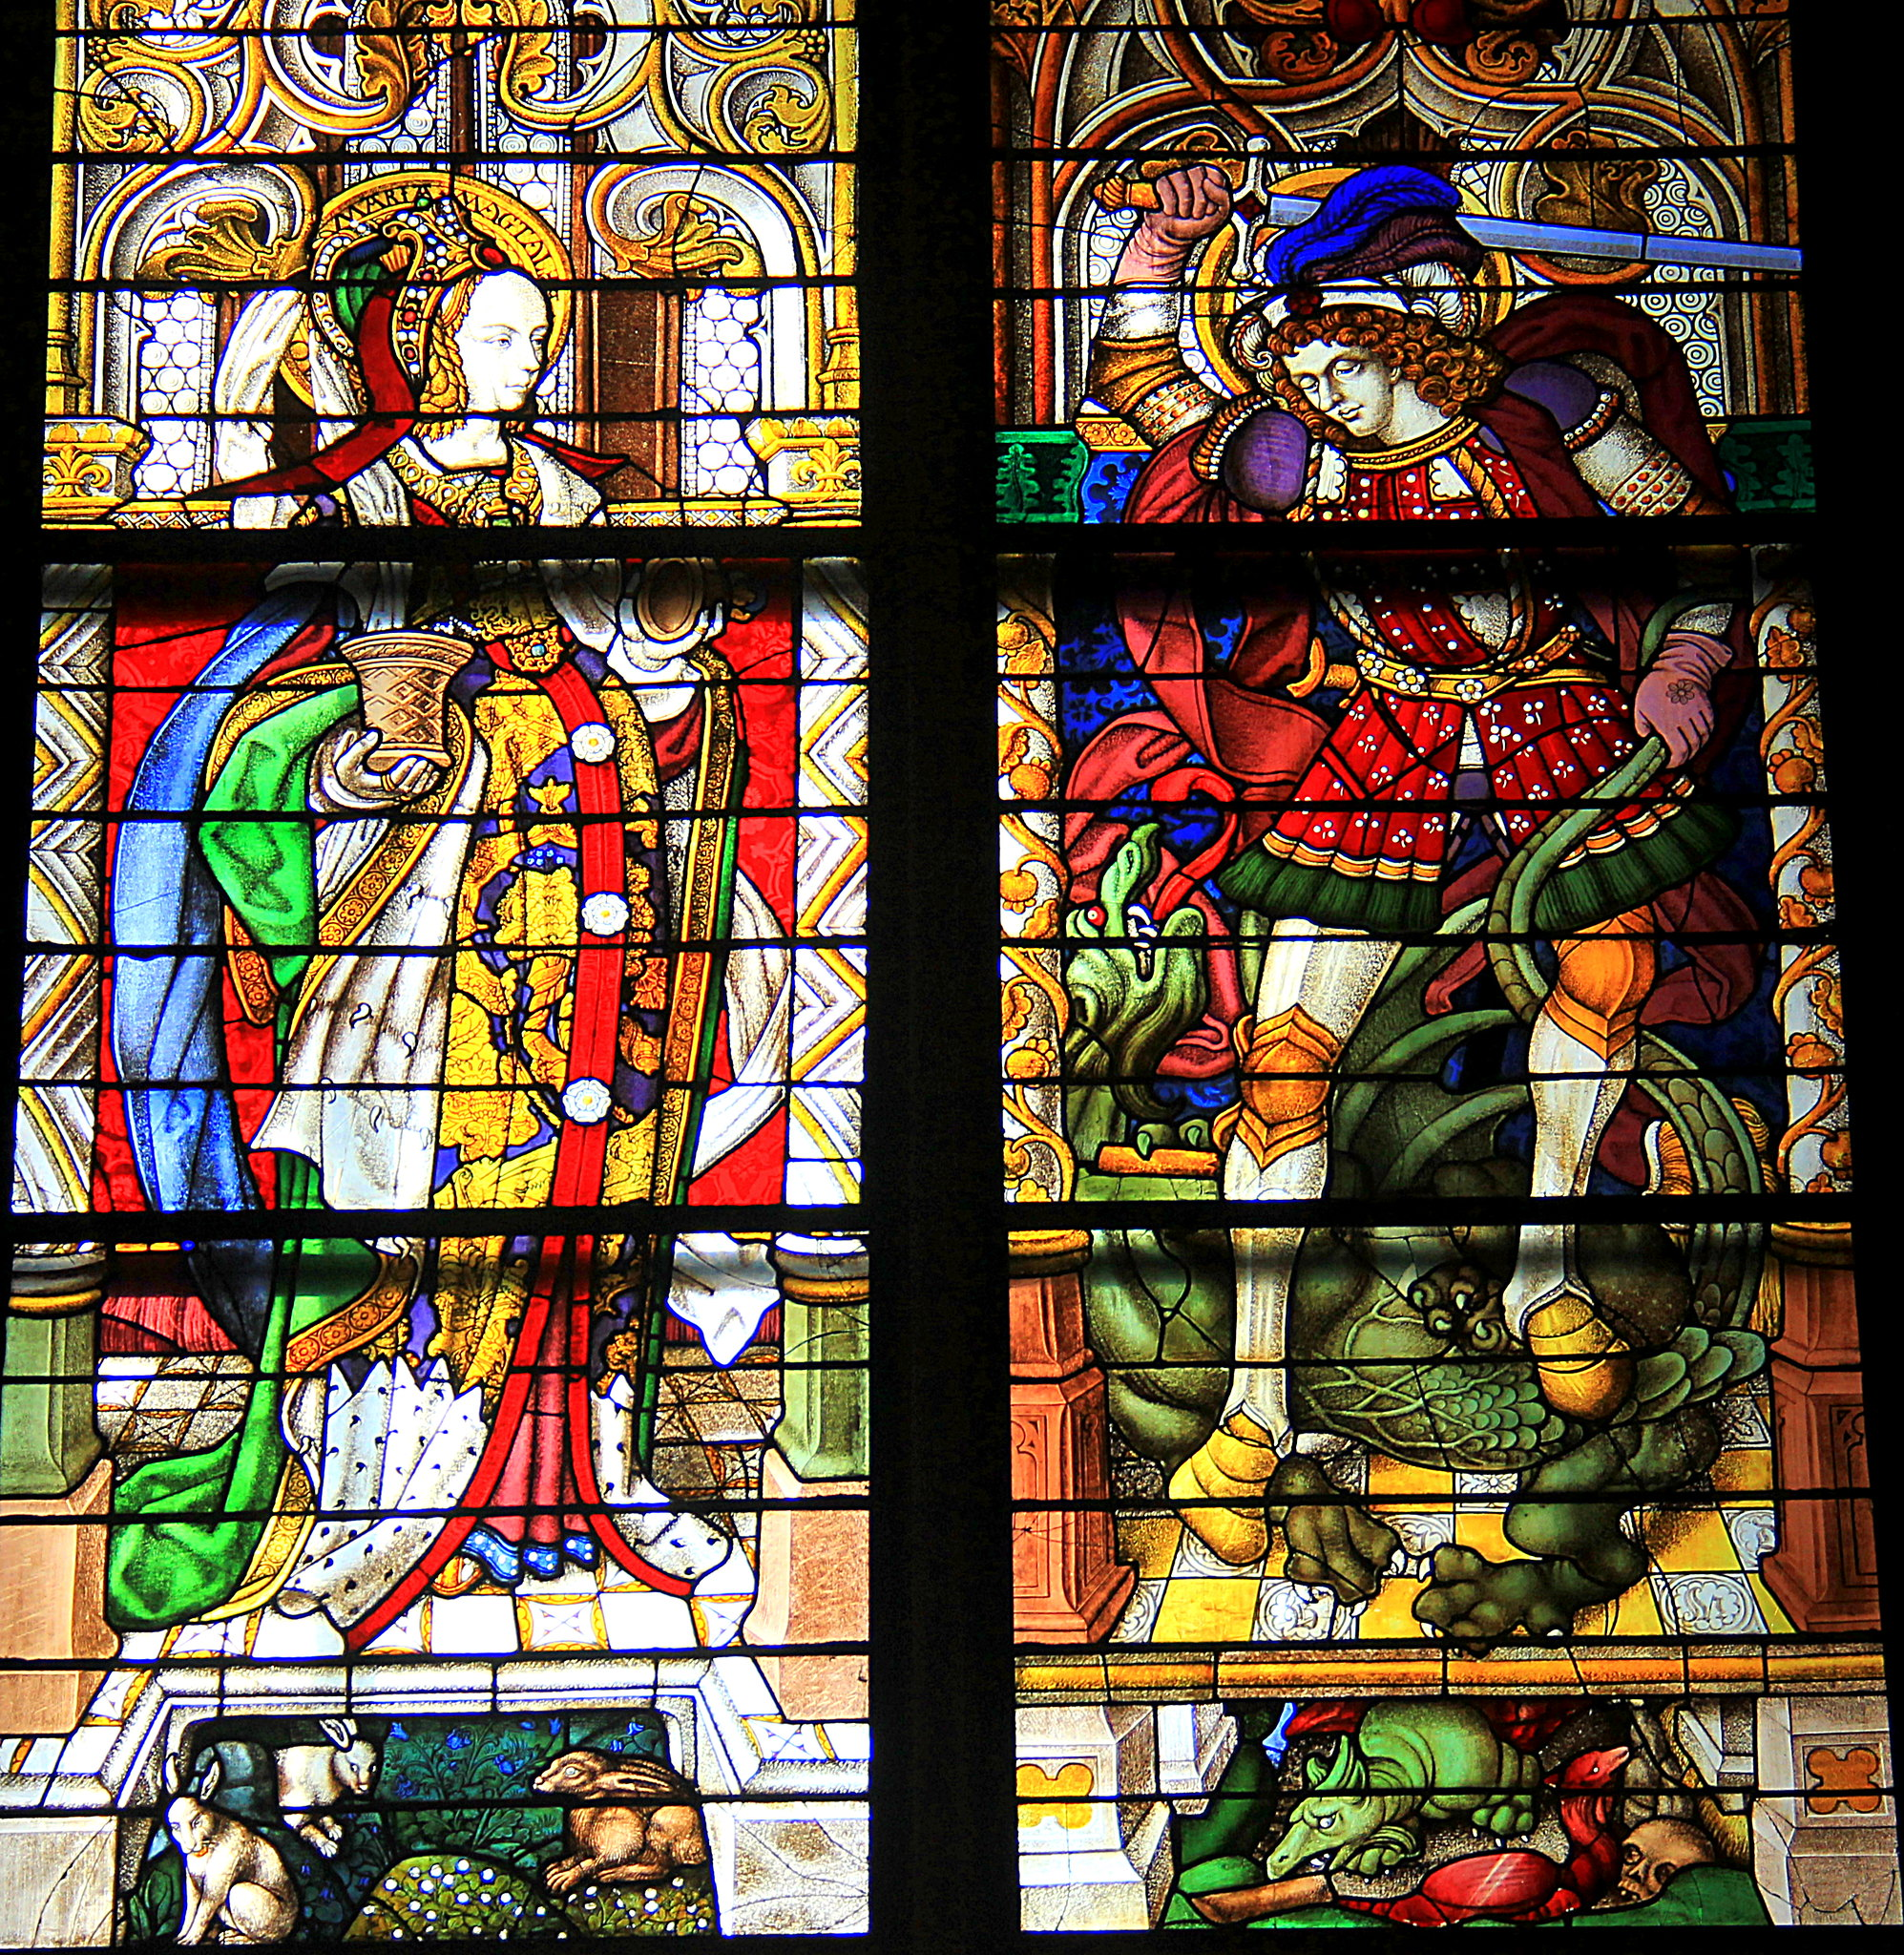 Stained glass interior of the Cologne Cathedral